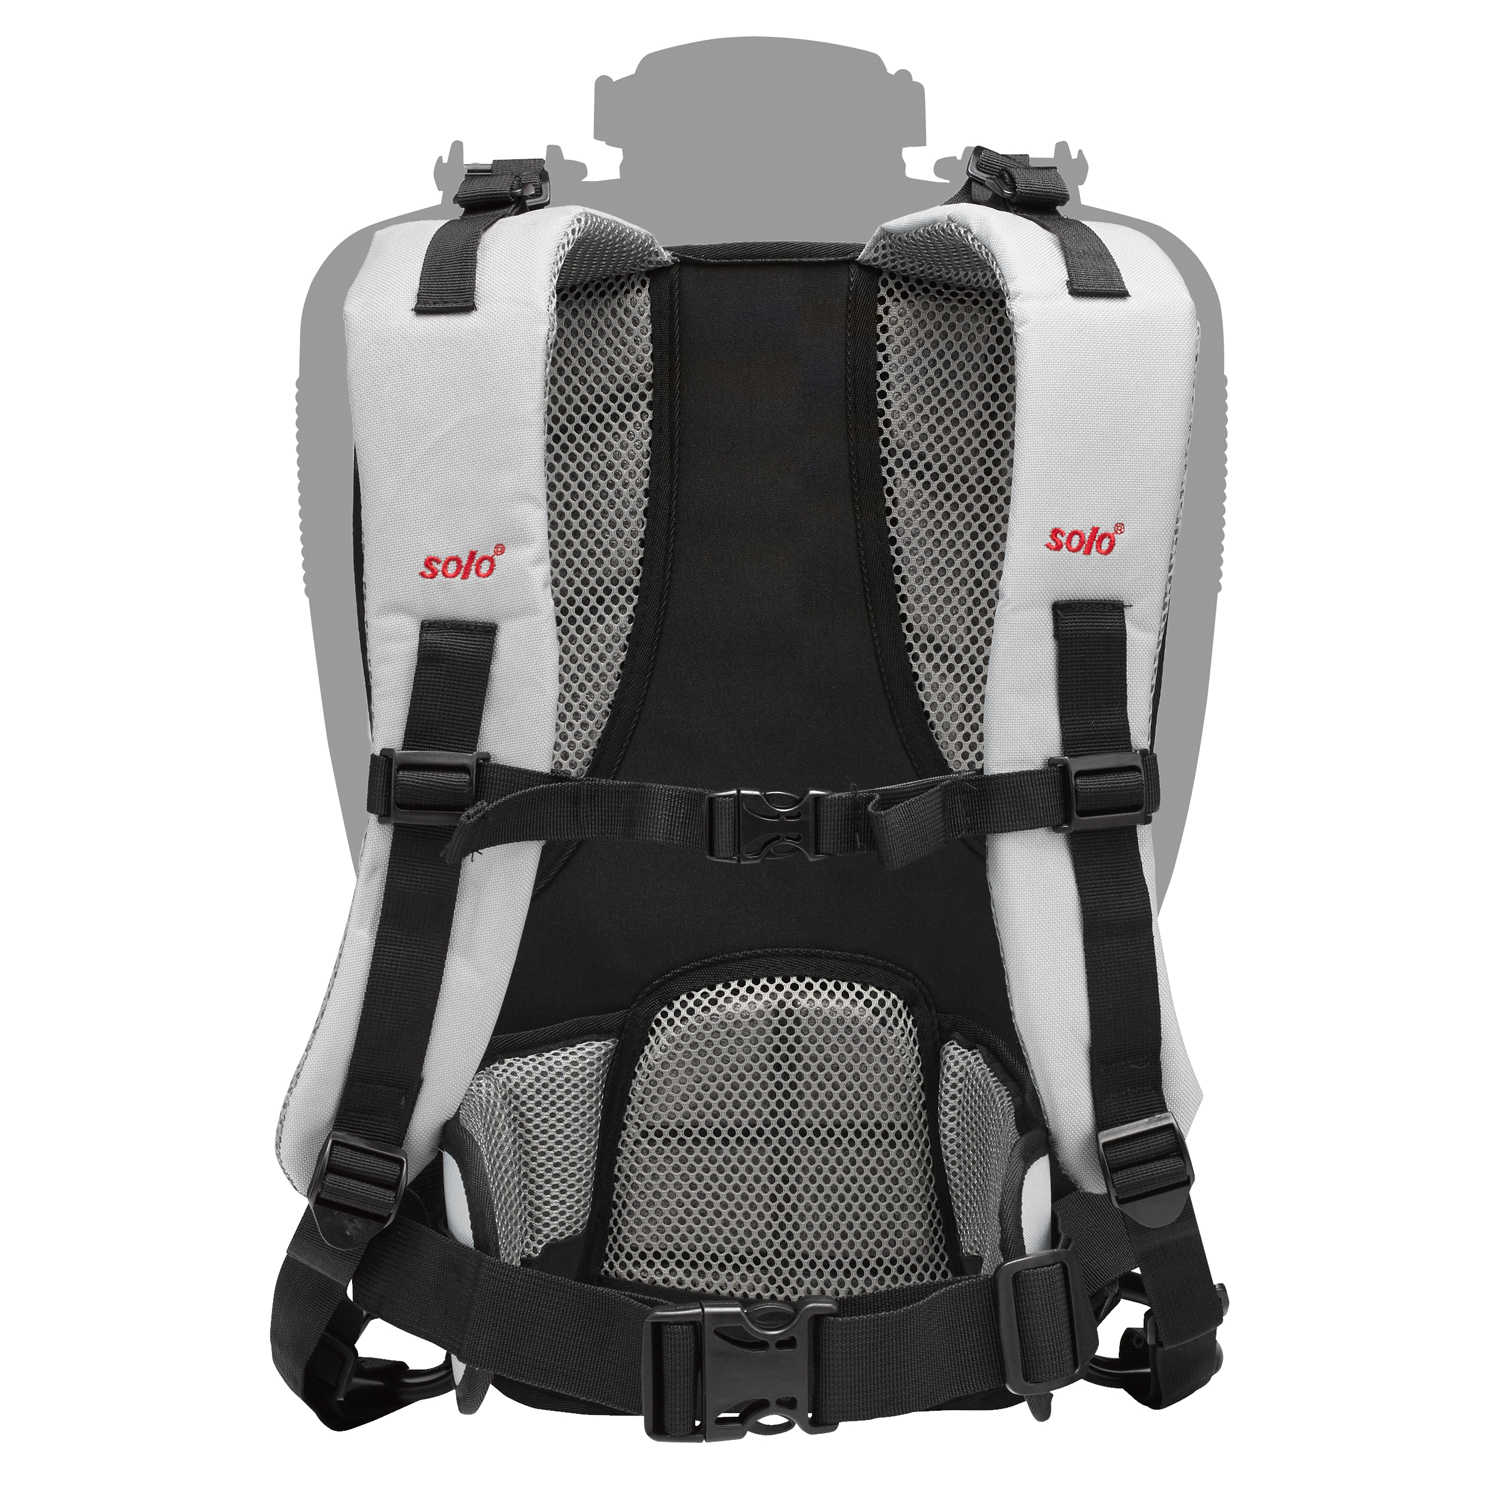 Solo® Professional Backpack Sprayer Carrying System